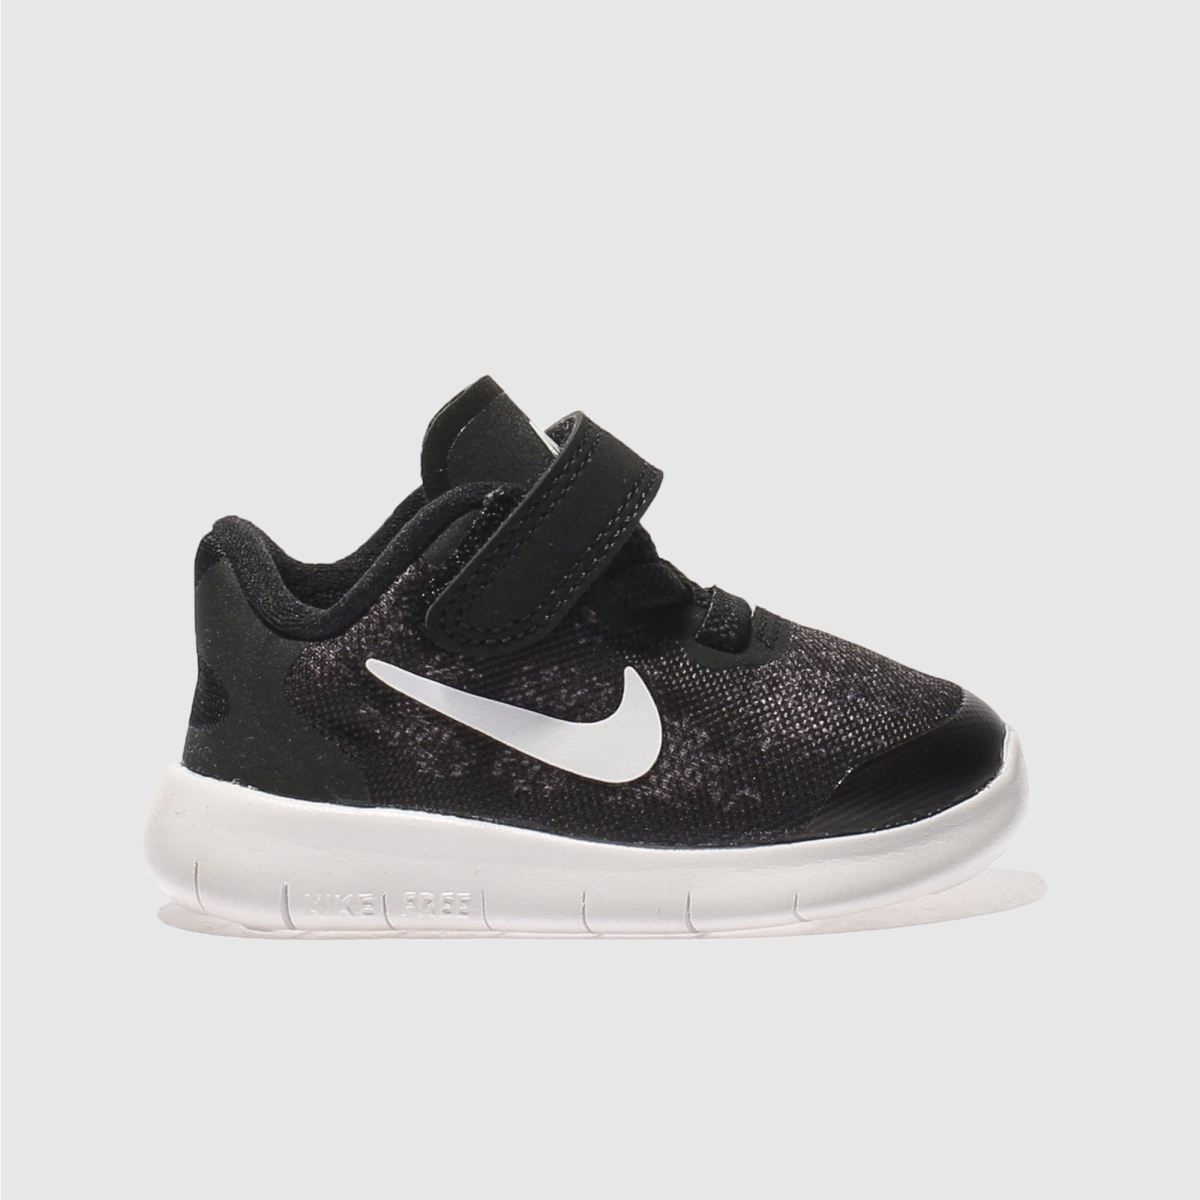 Nike Black & White Free Run 2 Unisex Toddler Toddler